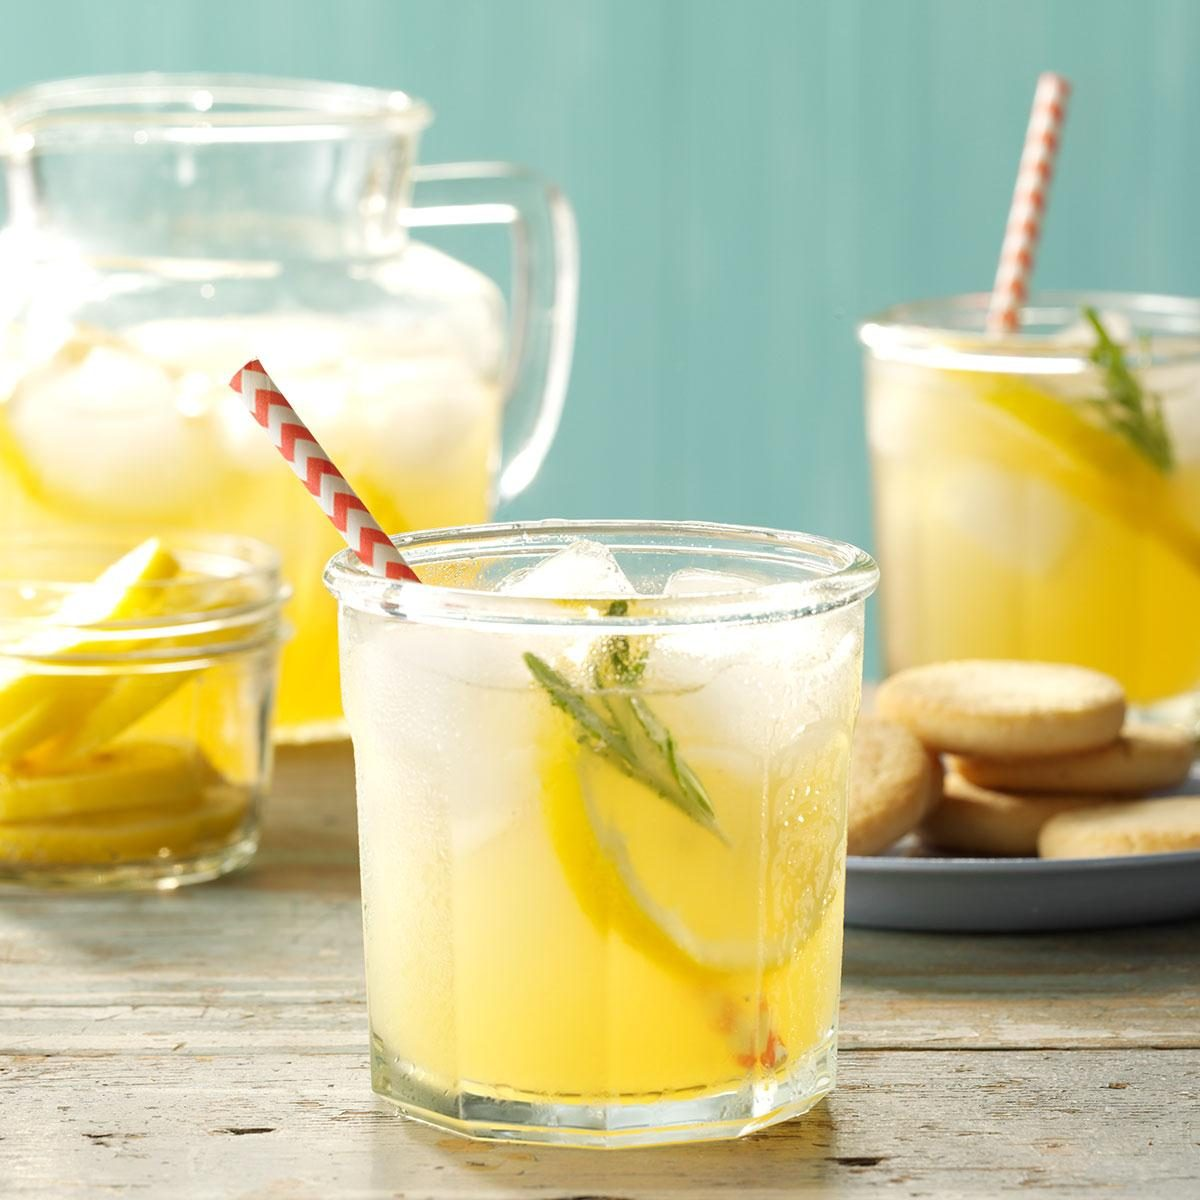 The 17 Best Lemonade Recipes for Summertime